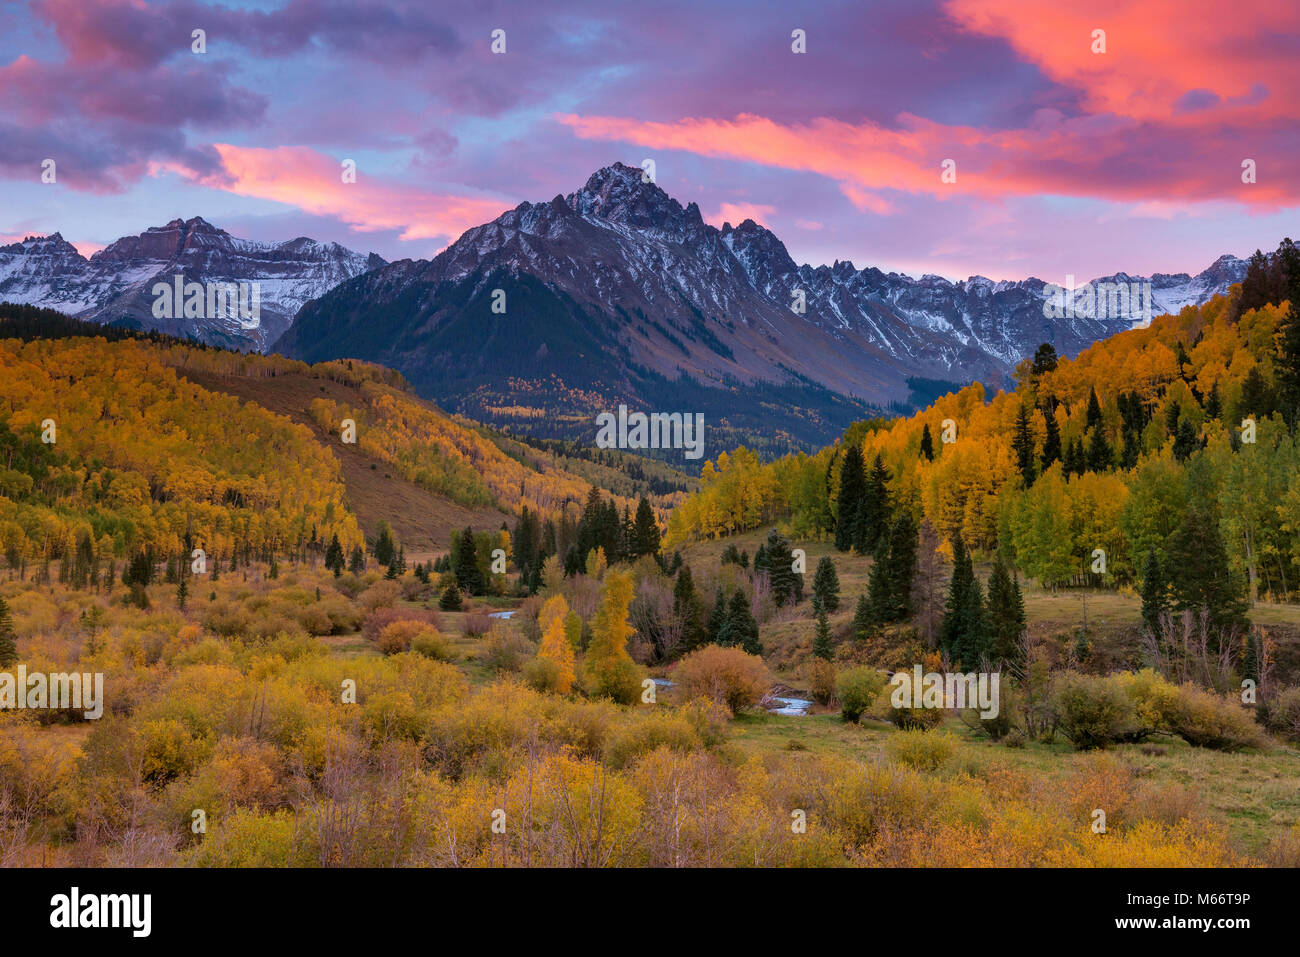 Dawn, Aspen, Willow Swamp, Mount Sneffels, Dallas Divide, Uncompahgre National Forest, Colorado - Stock Image